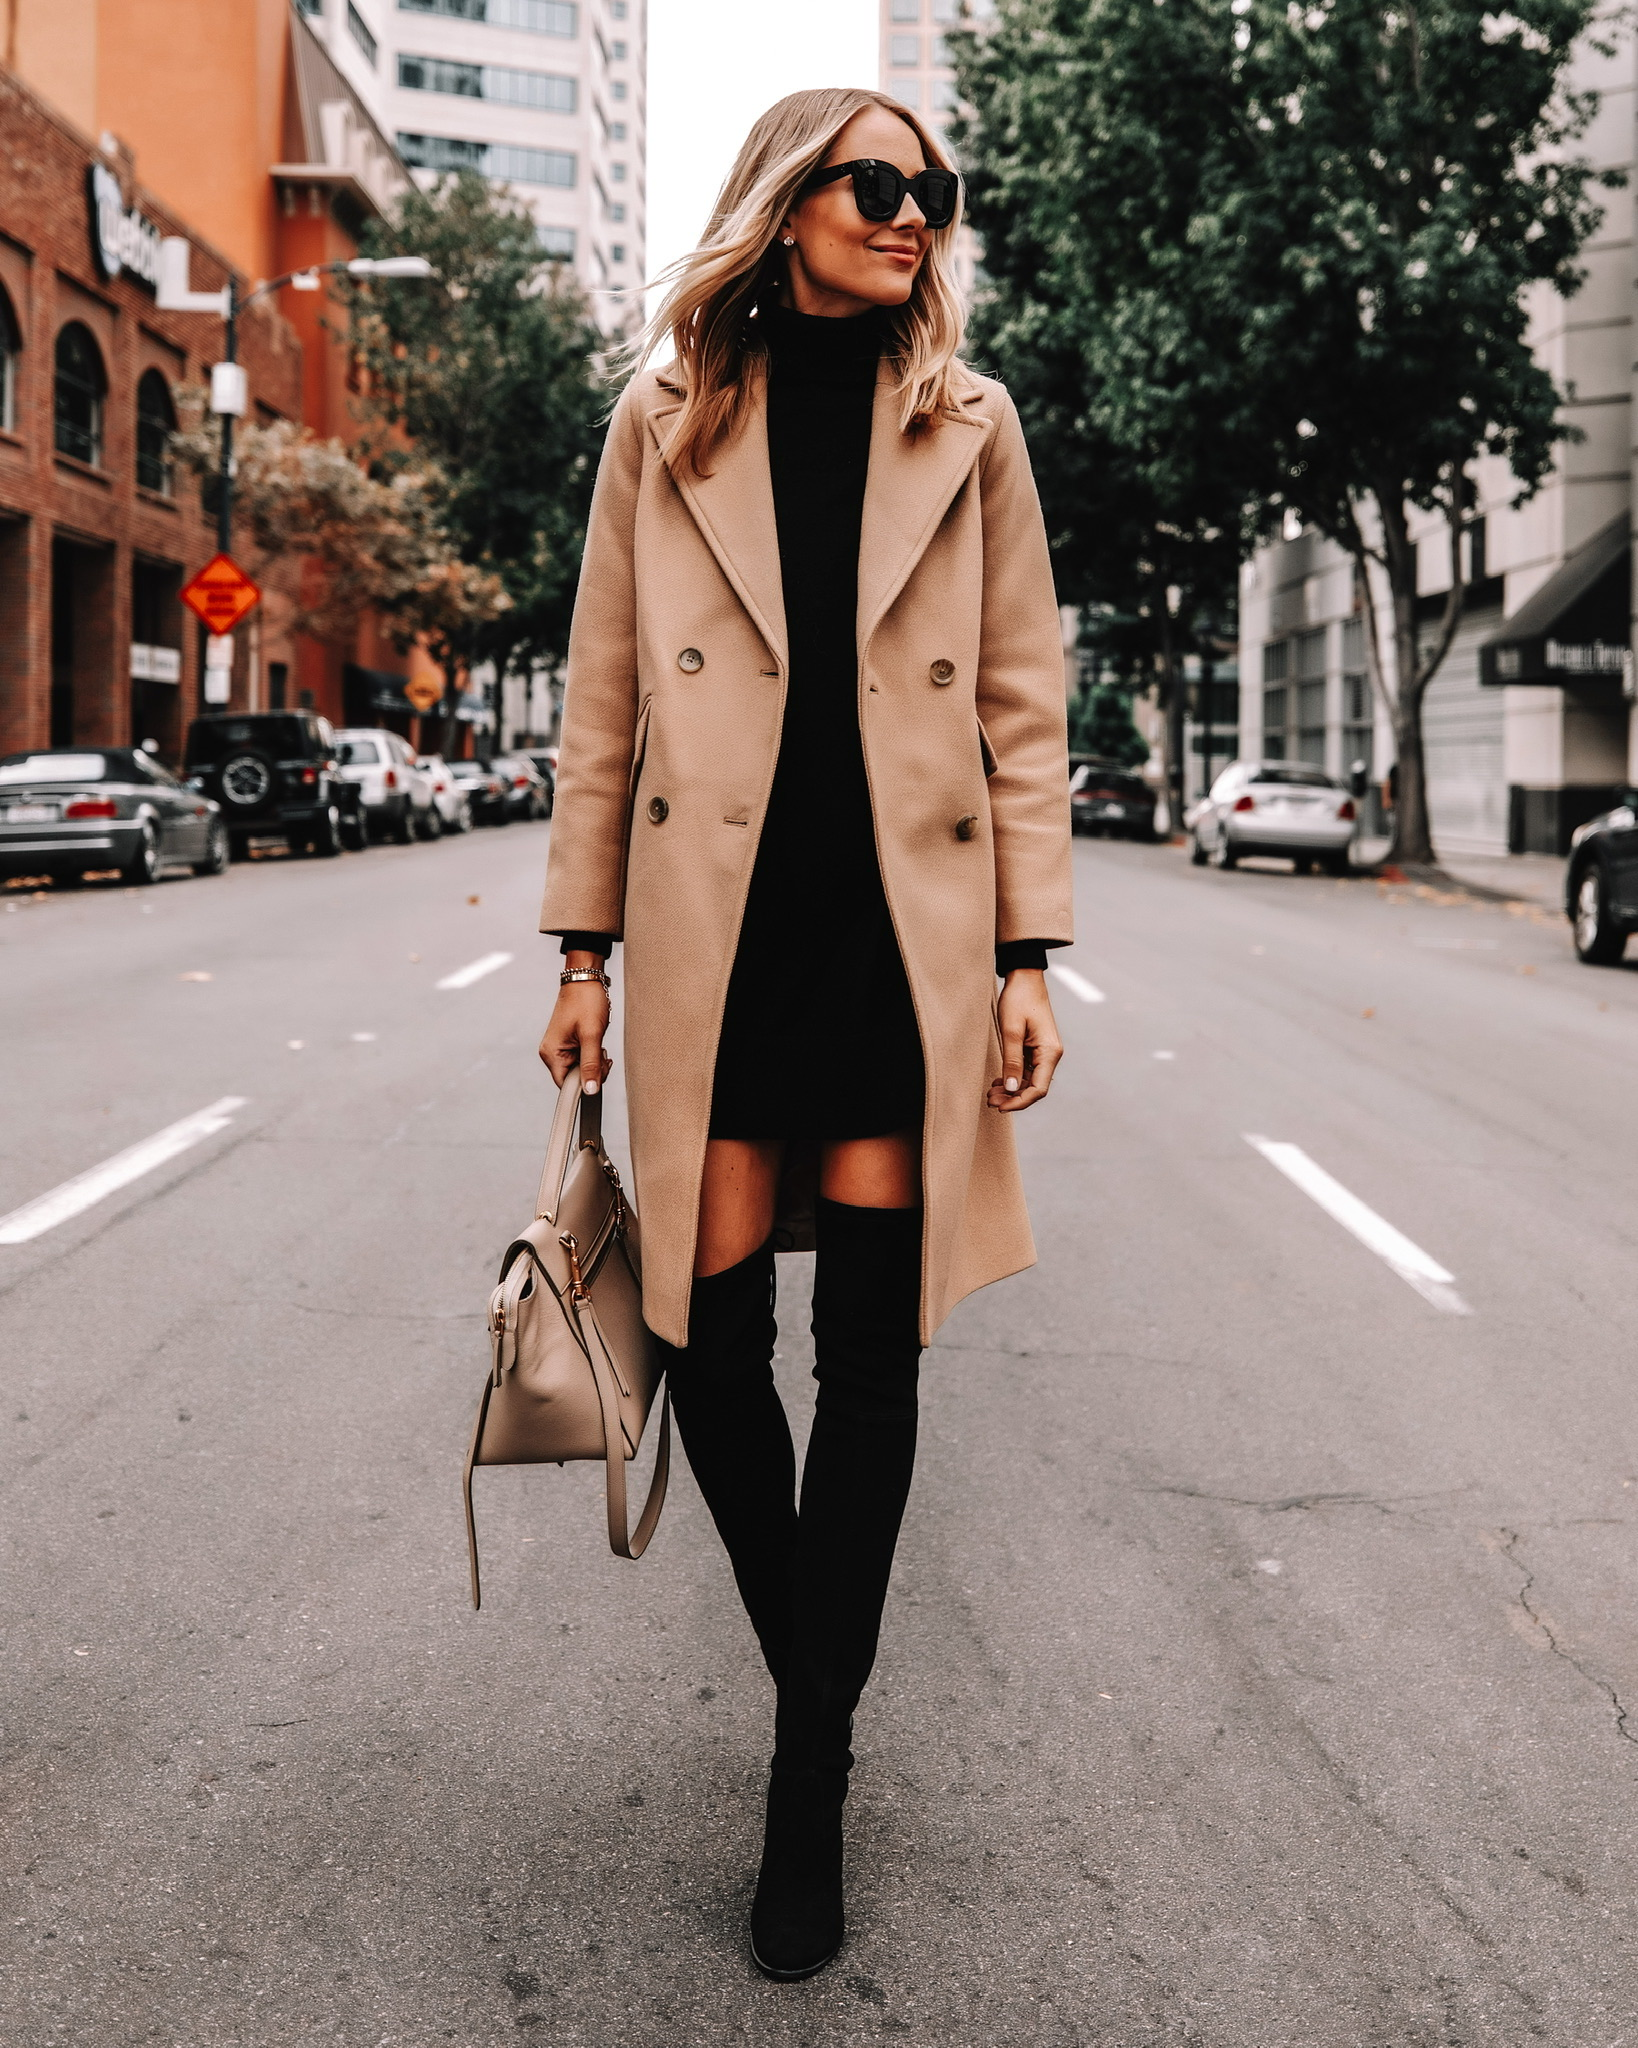 Fashion Jackson Wearing Everlane Camel Coat Everlane Black Sweater Dress Black OTK Boots